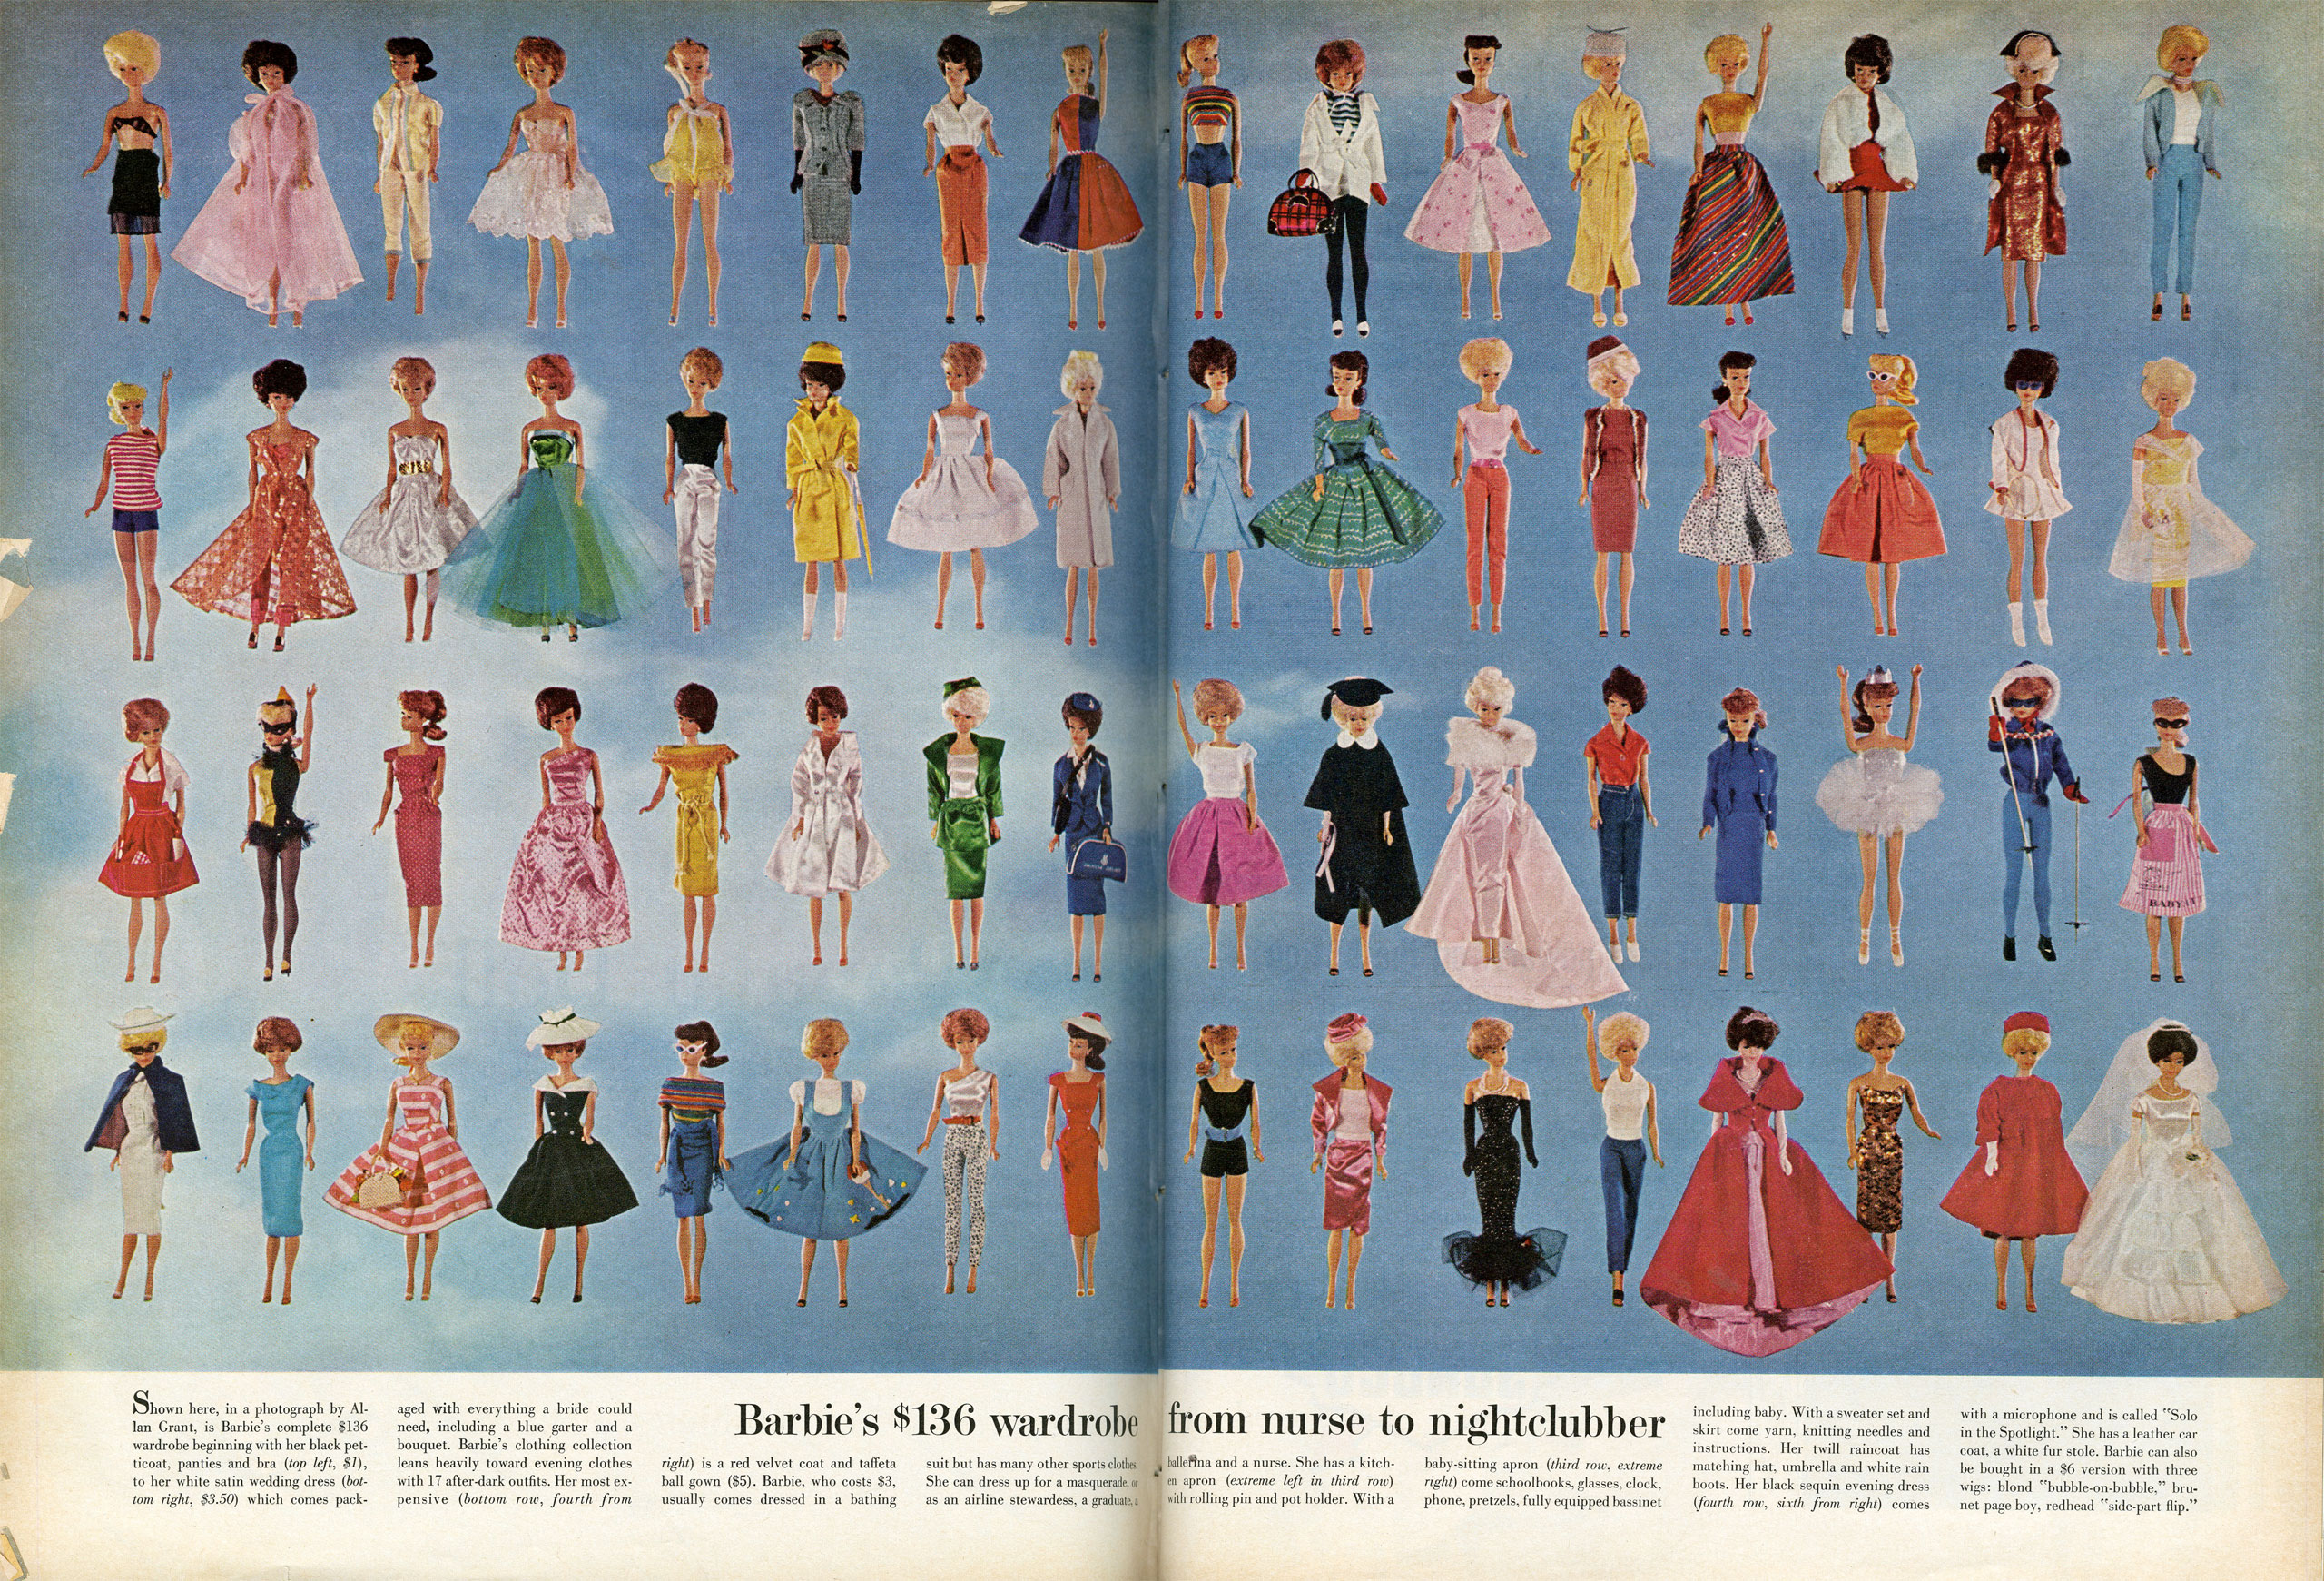 Caption from LIFE. Barbie's $136 wardrobe from nurse to nightclubber.